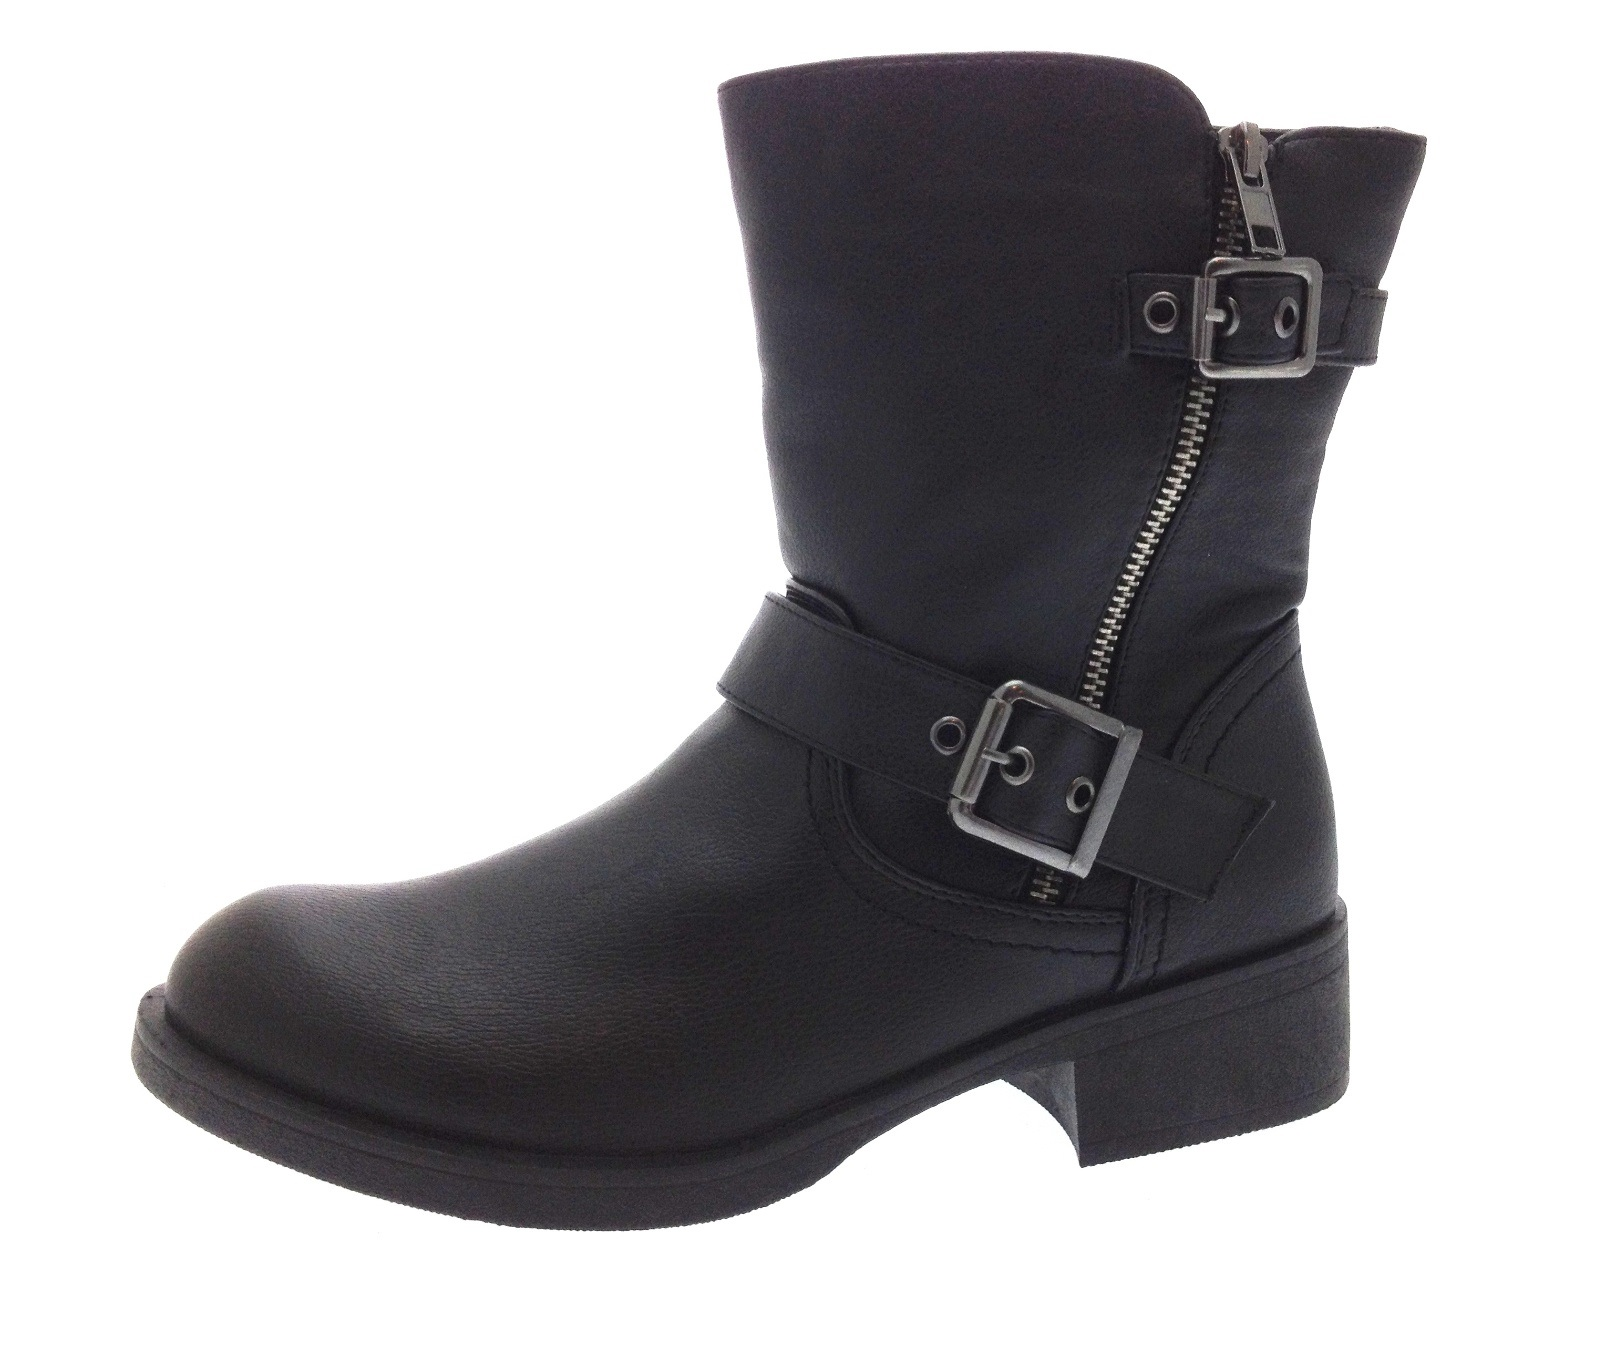 Boot Barn has a large selection of Women's Motorcycle Boots from brands including: Frye, Harley Davidson, and more! Orders over $75 ship free!